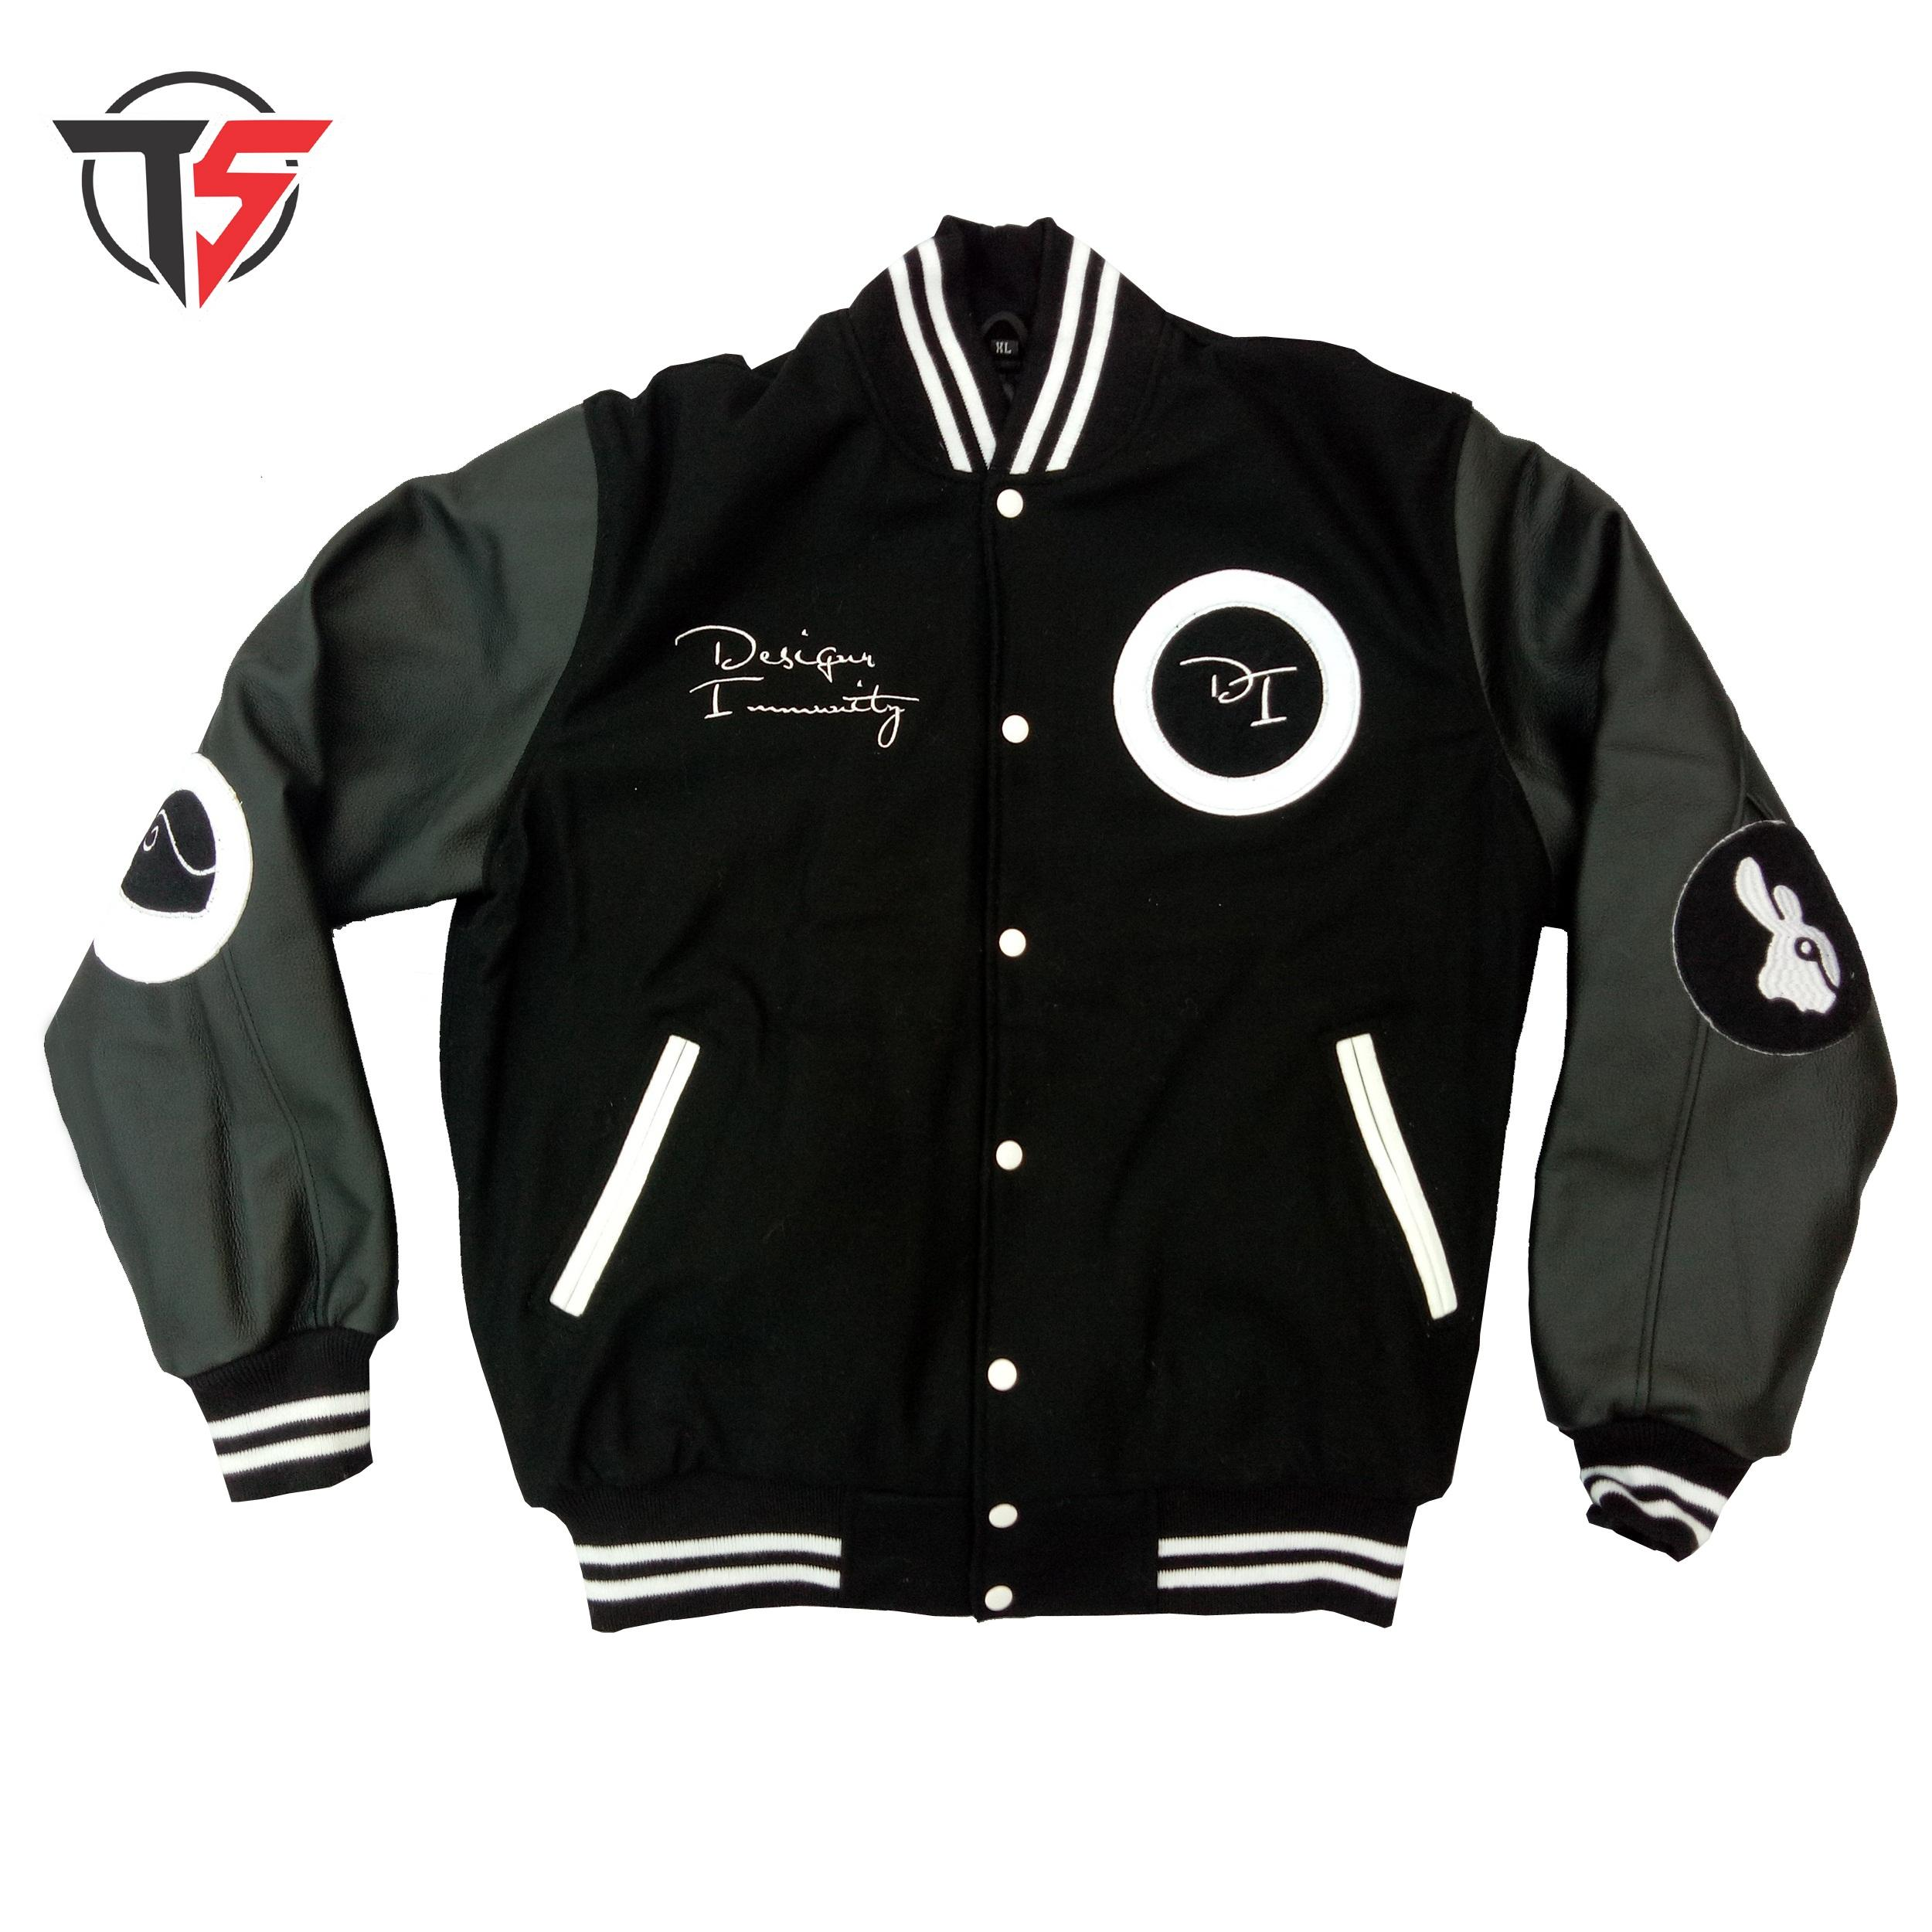 premium quality wool varsity jacket with genuine leather sleeves custom embroidery patches letter jacket